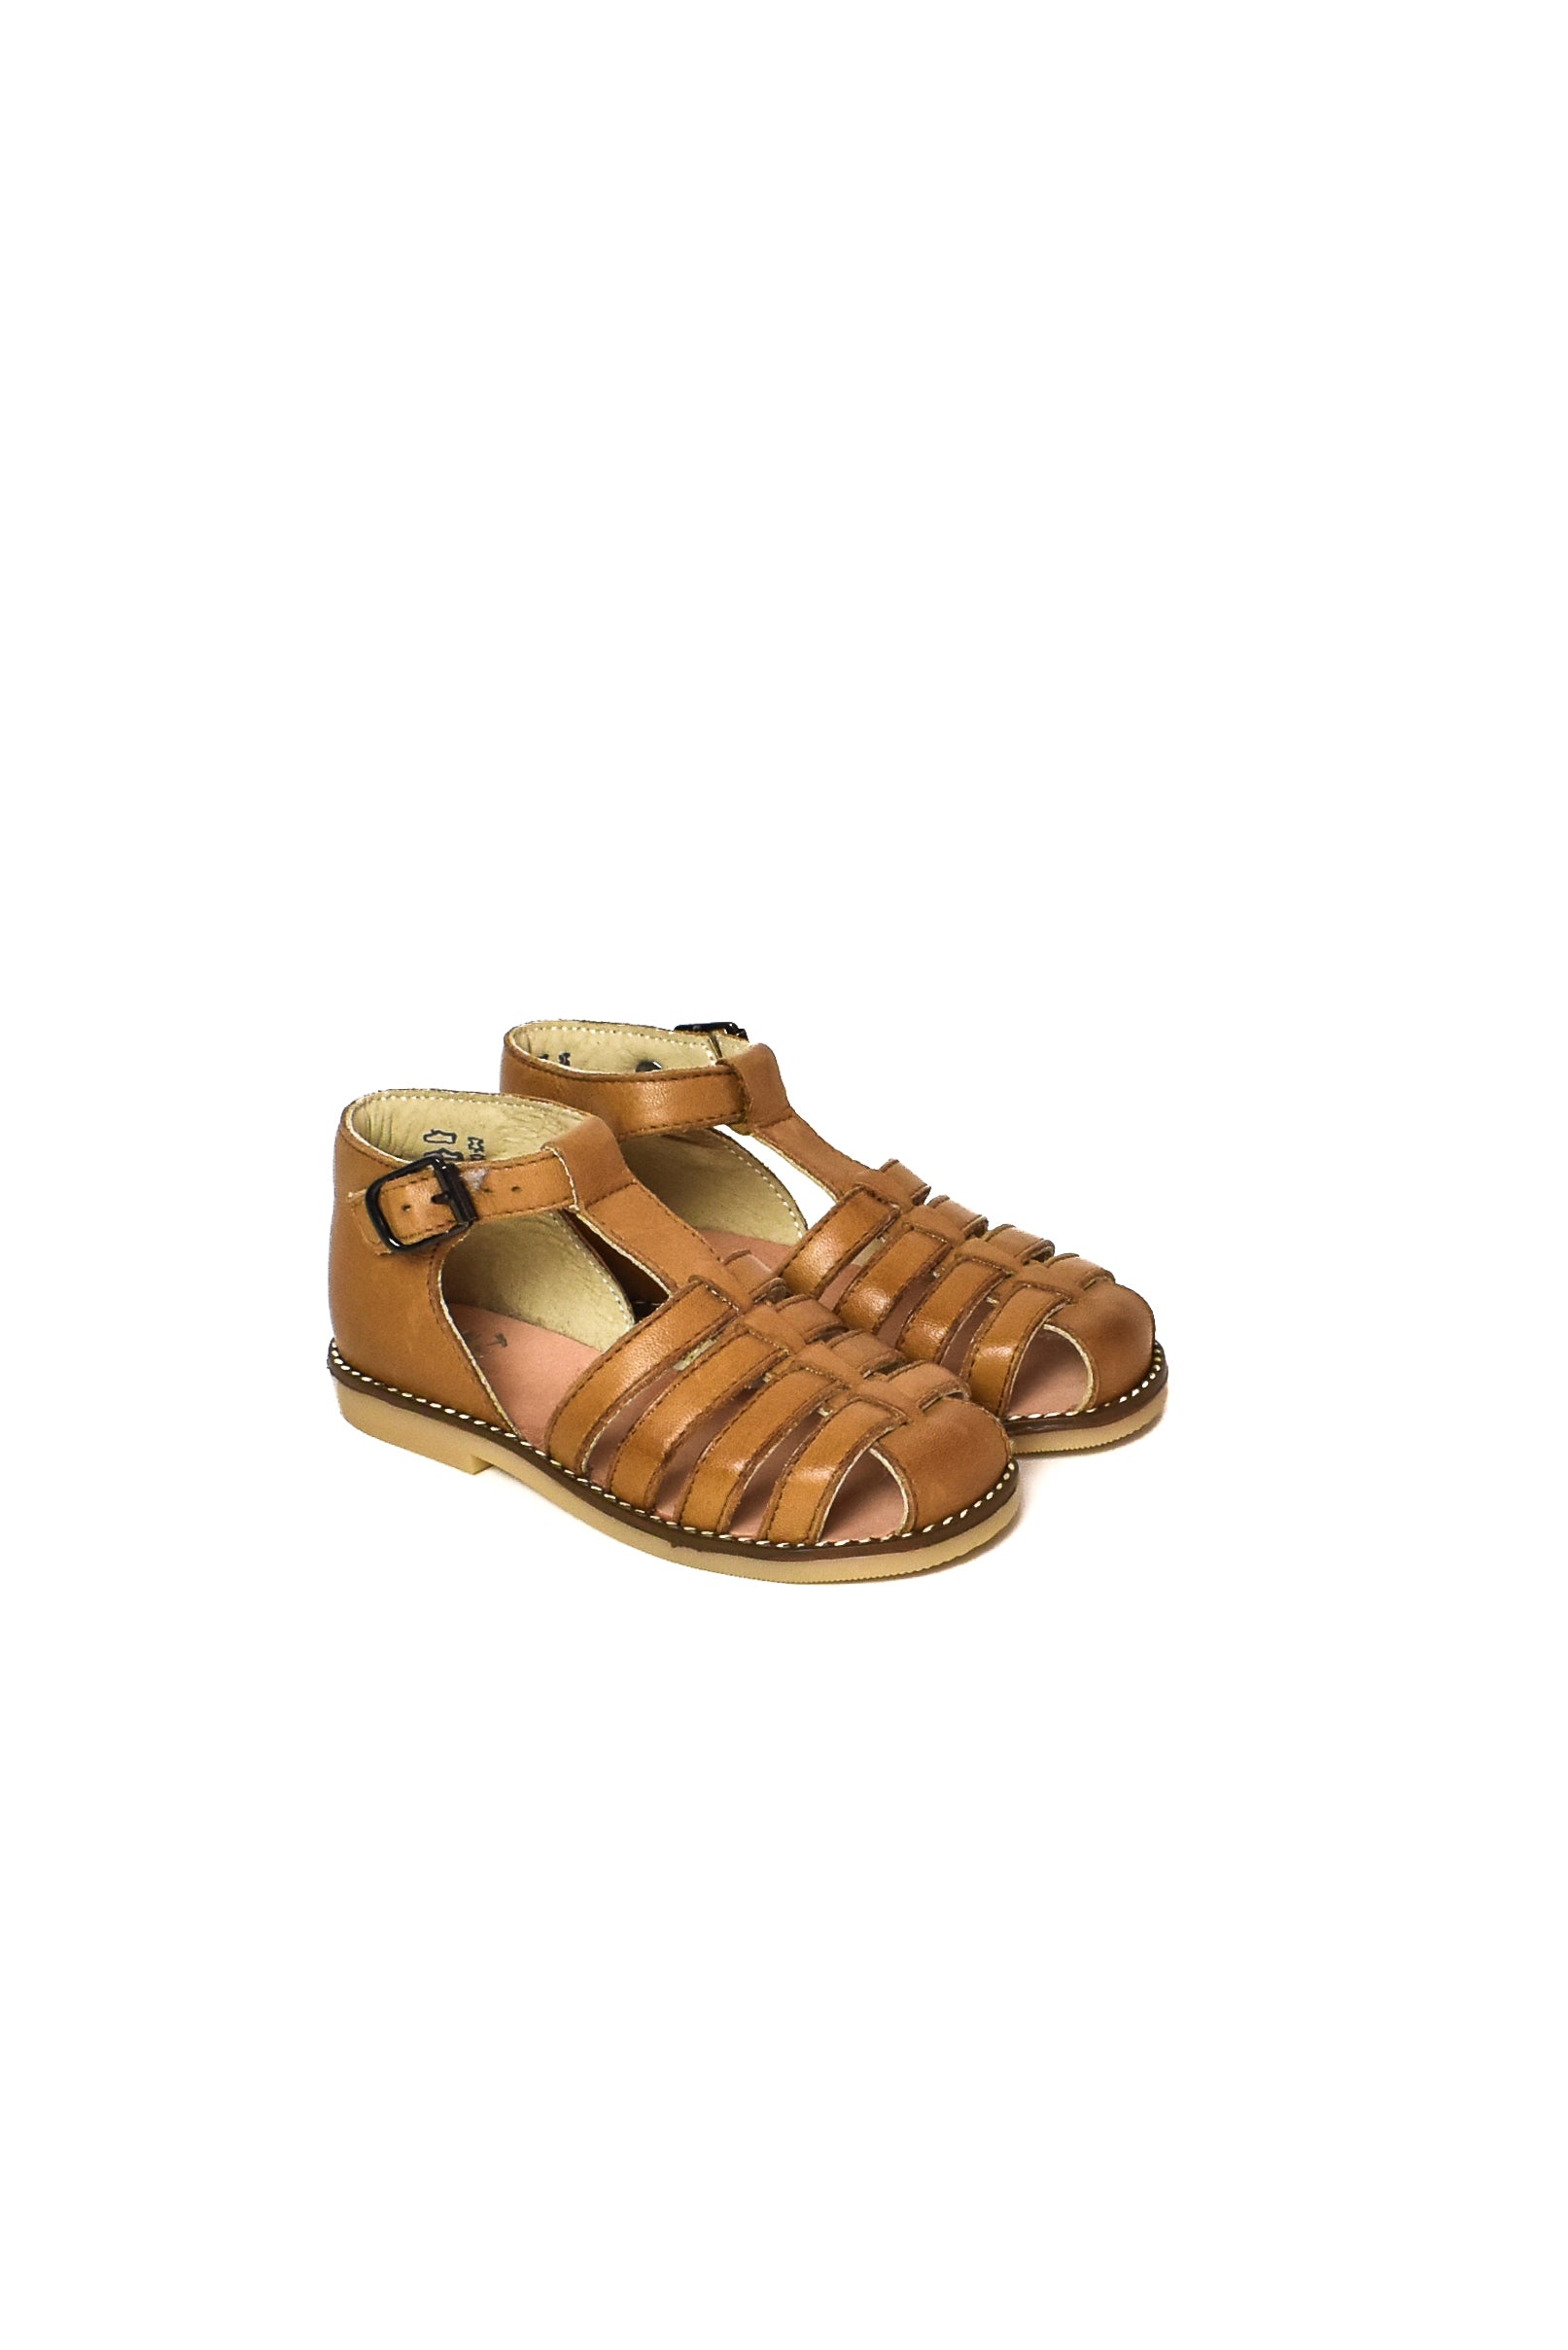 10007861 Little Mary Kids~Sandals 4T (EU 26) at Retykle